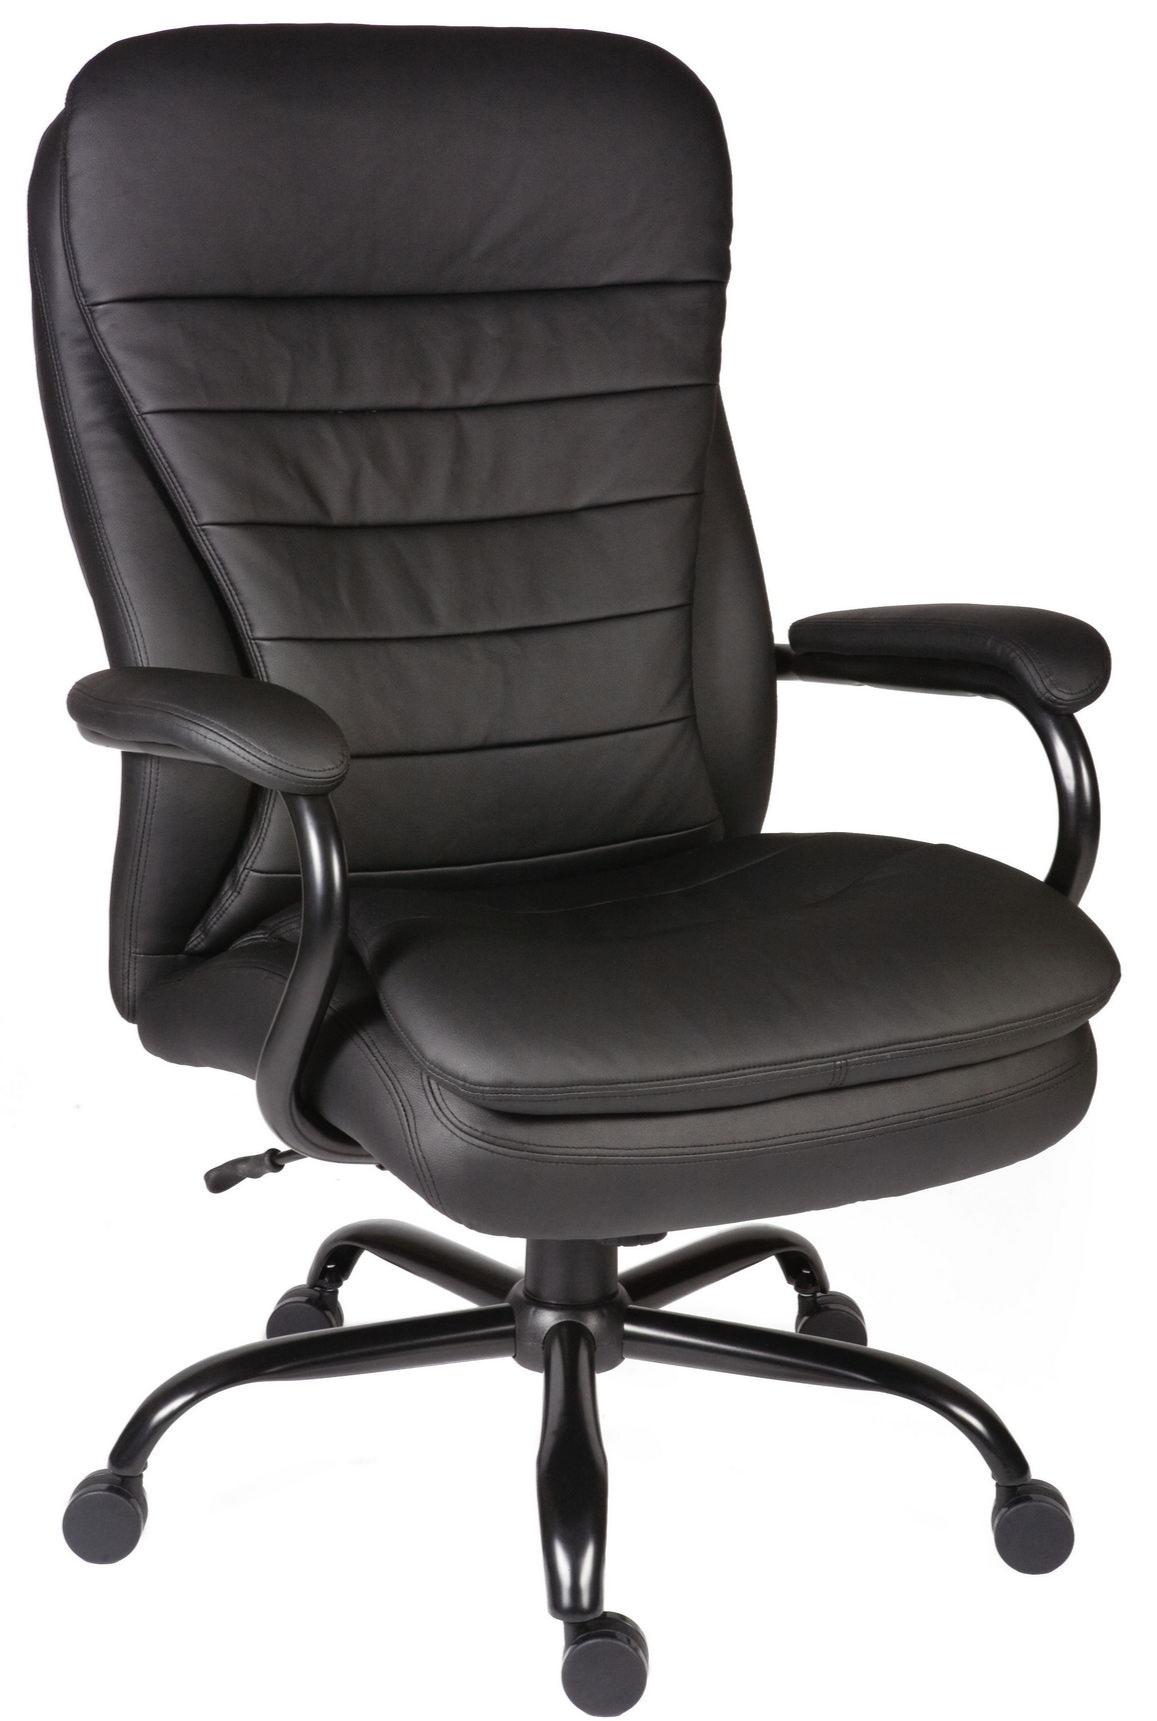 Awesome Heavy Duty Office Chairs Bariatric Office Chairs Home Interior And Landscaping Ymoonbapapsignezvosmurscom